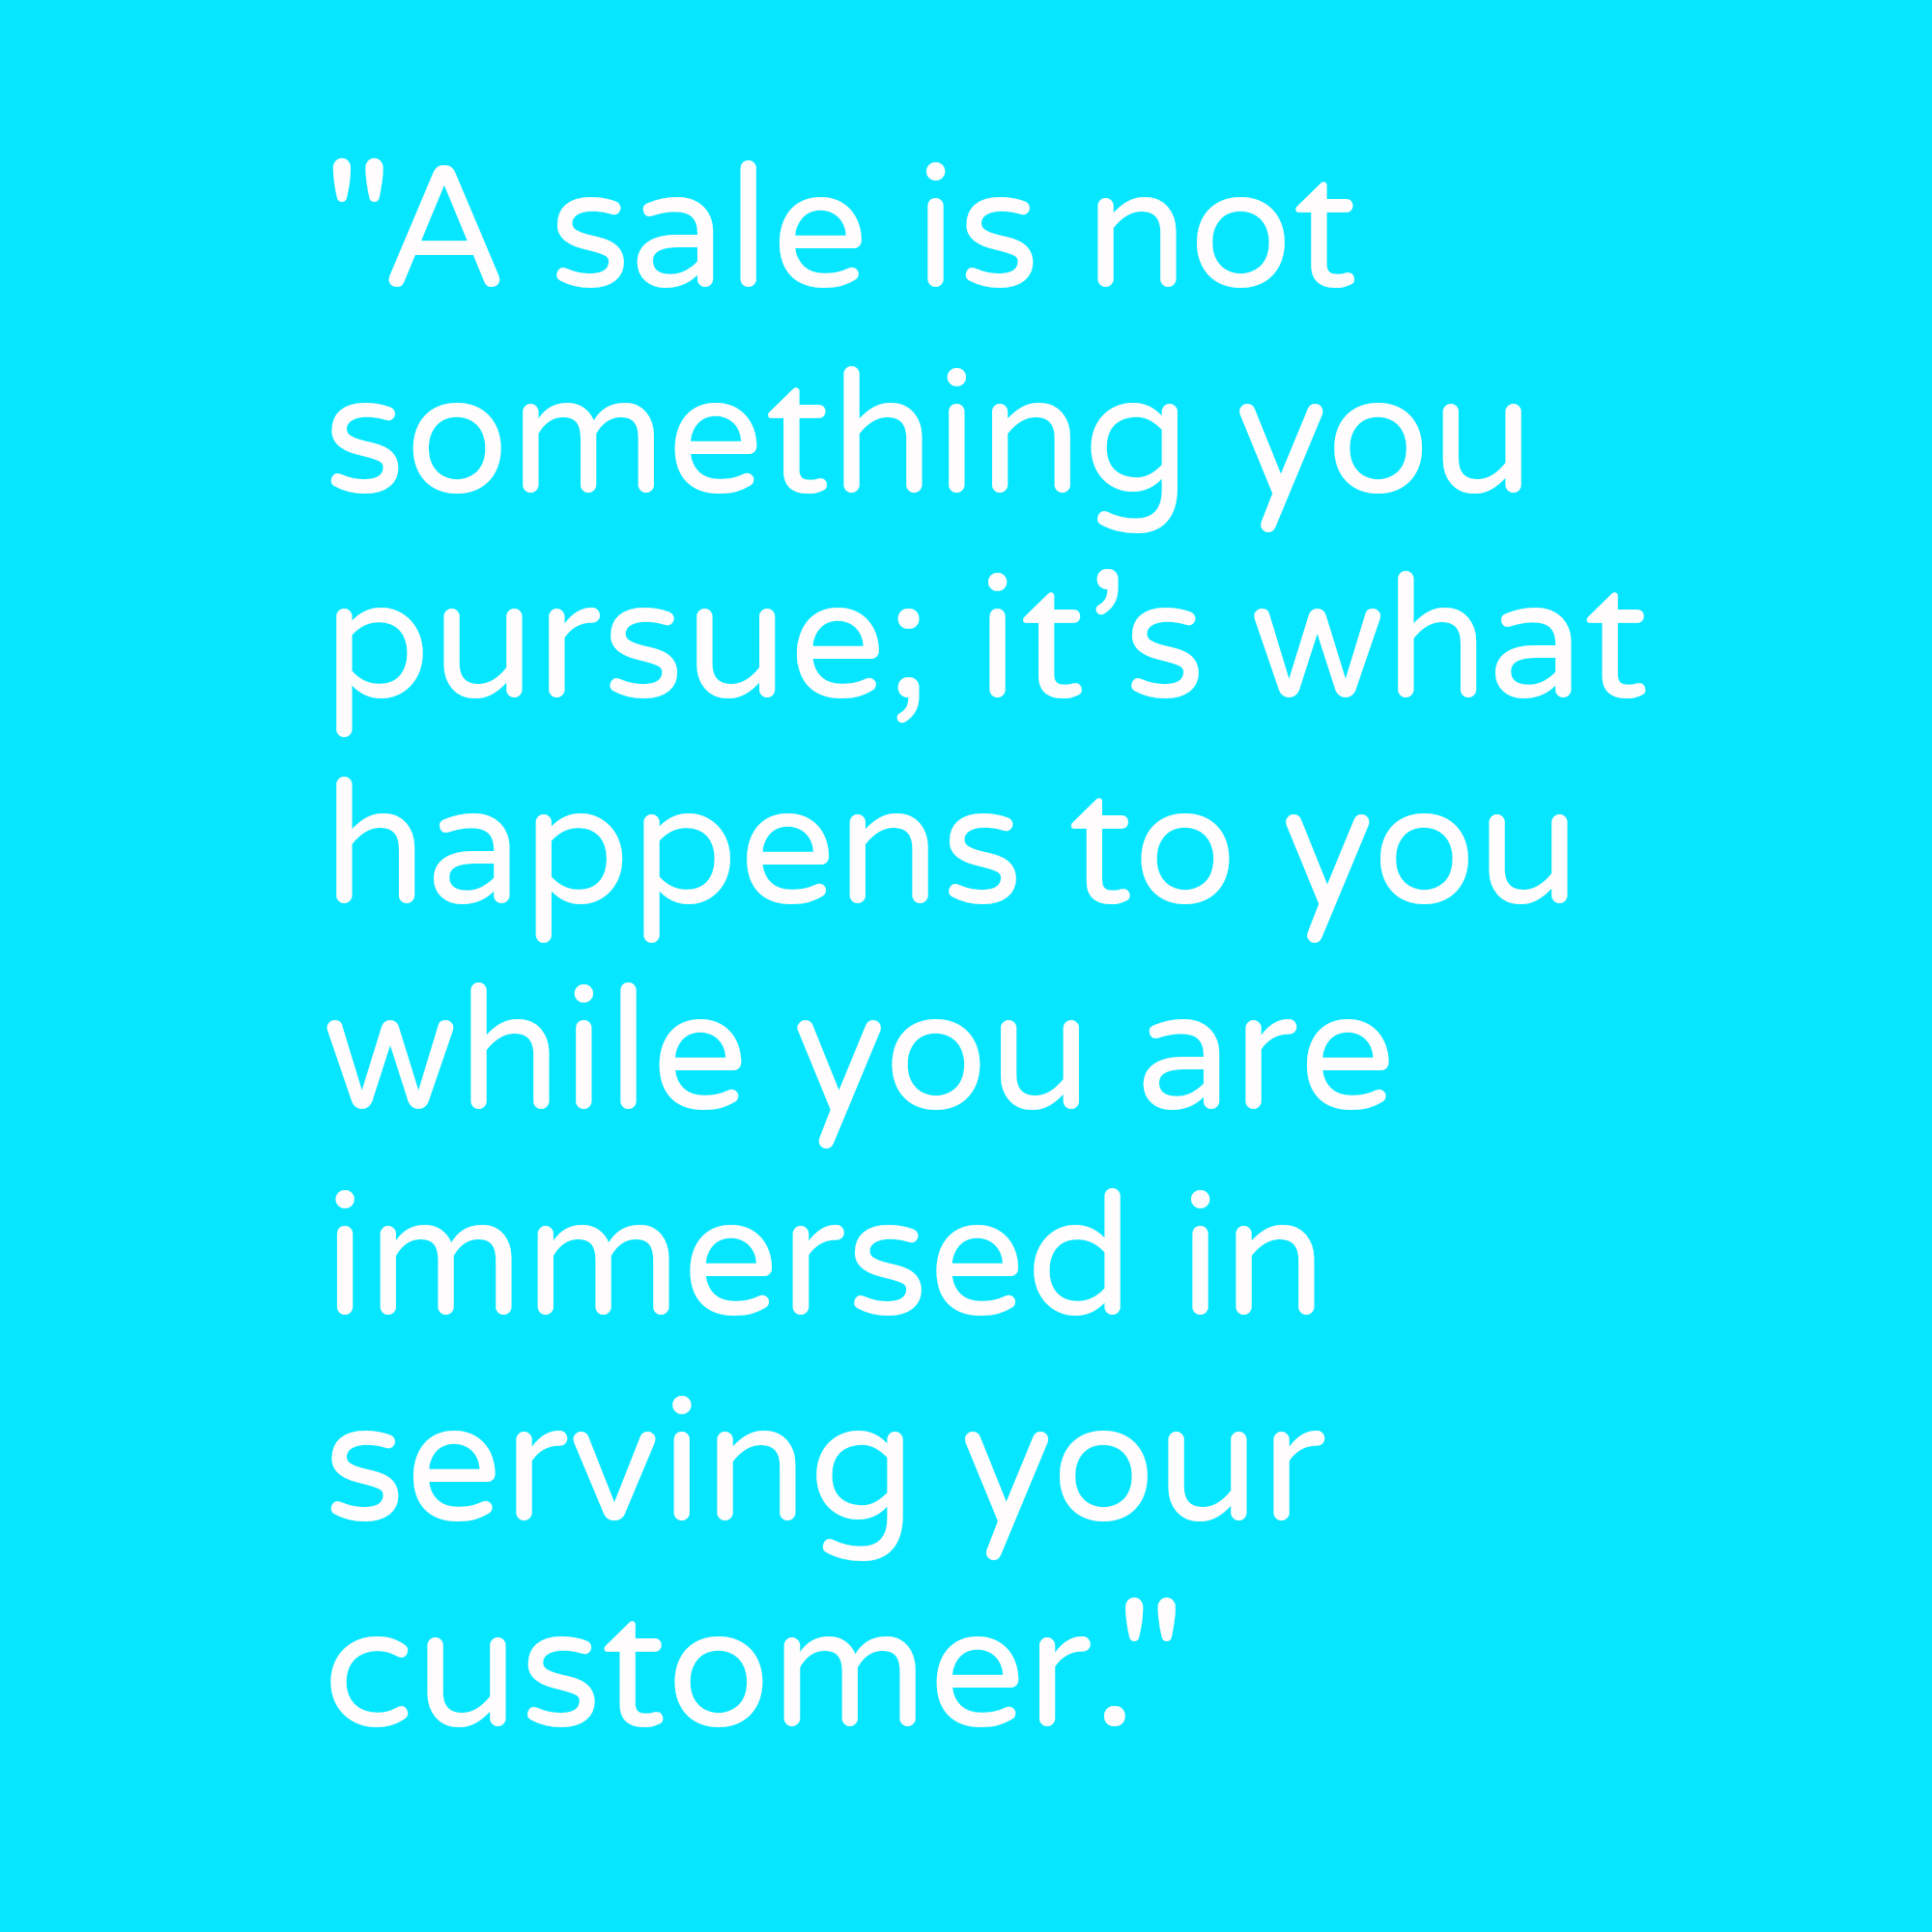 Motivational Sales Quotes Fascinating How Do You Run Your Business #motivational #sales #quotes  Let's